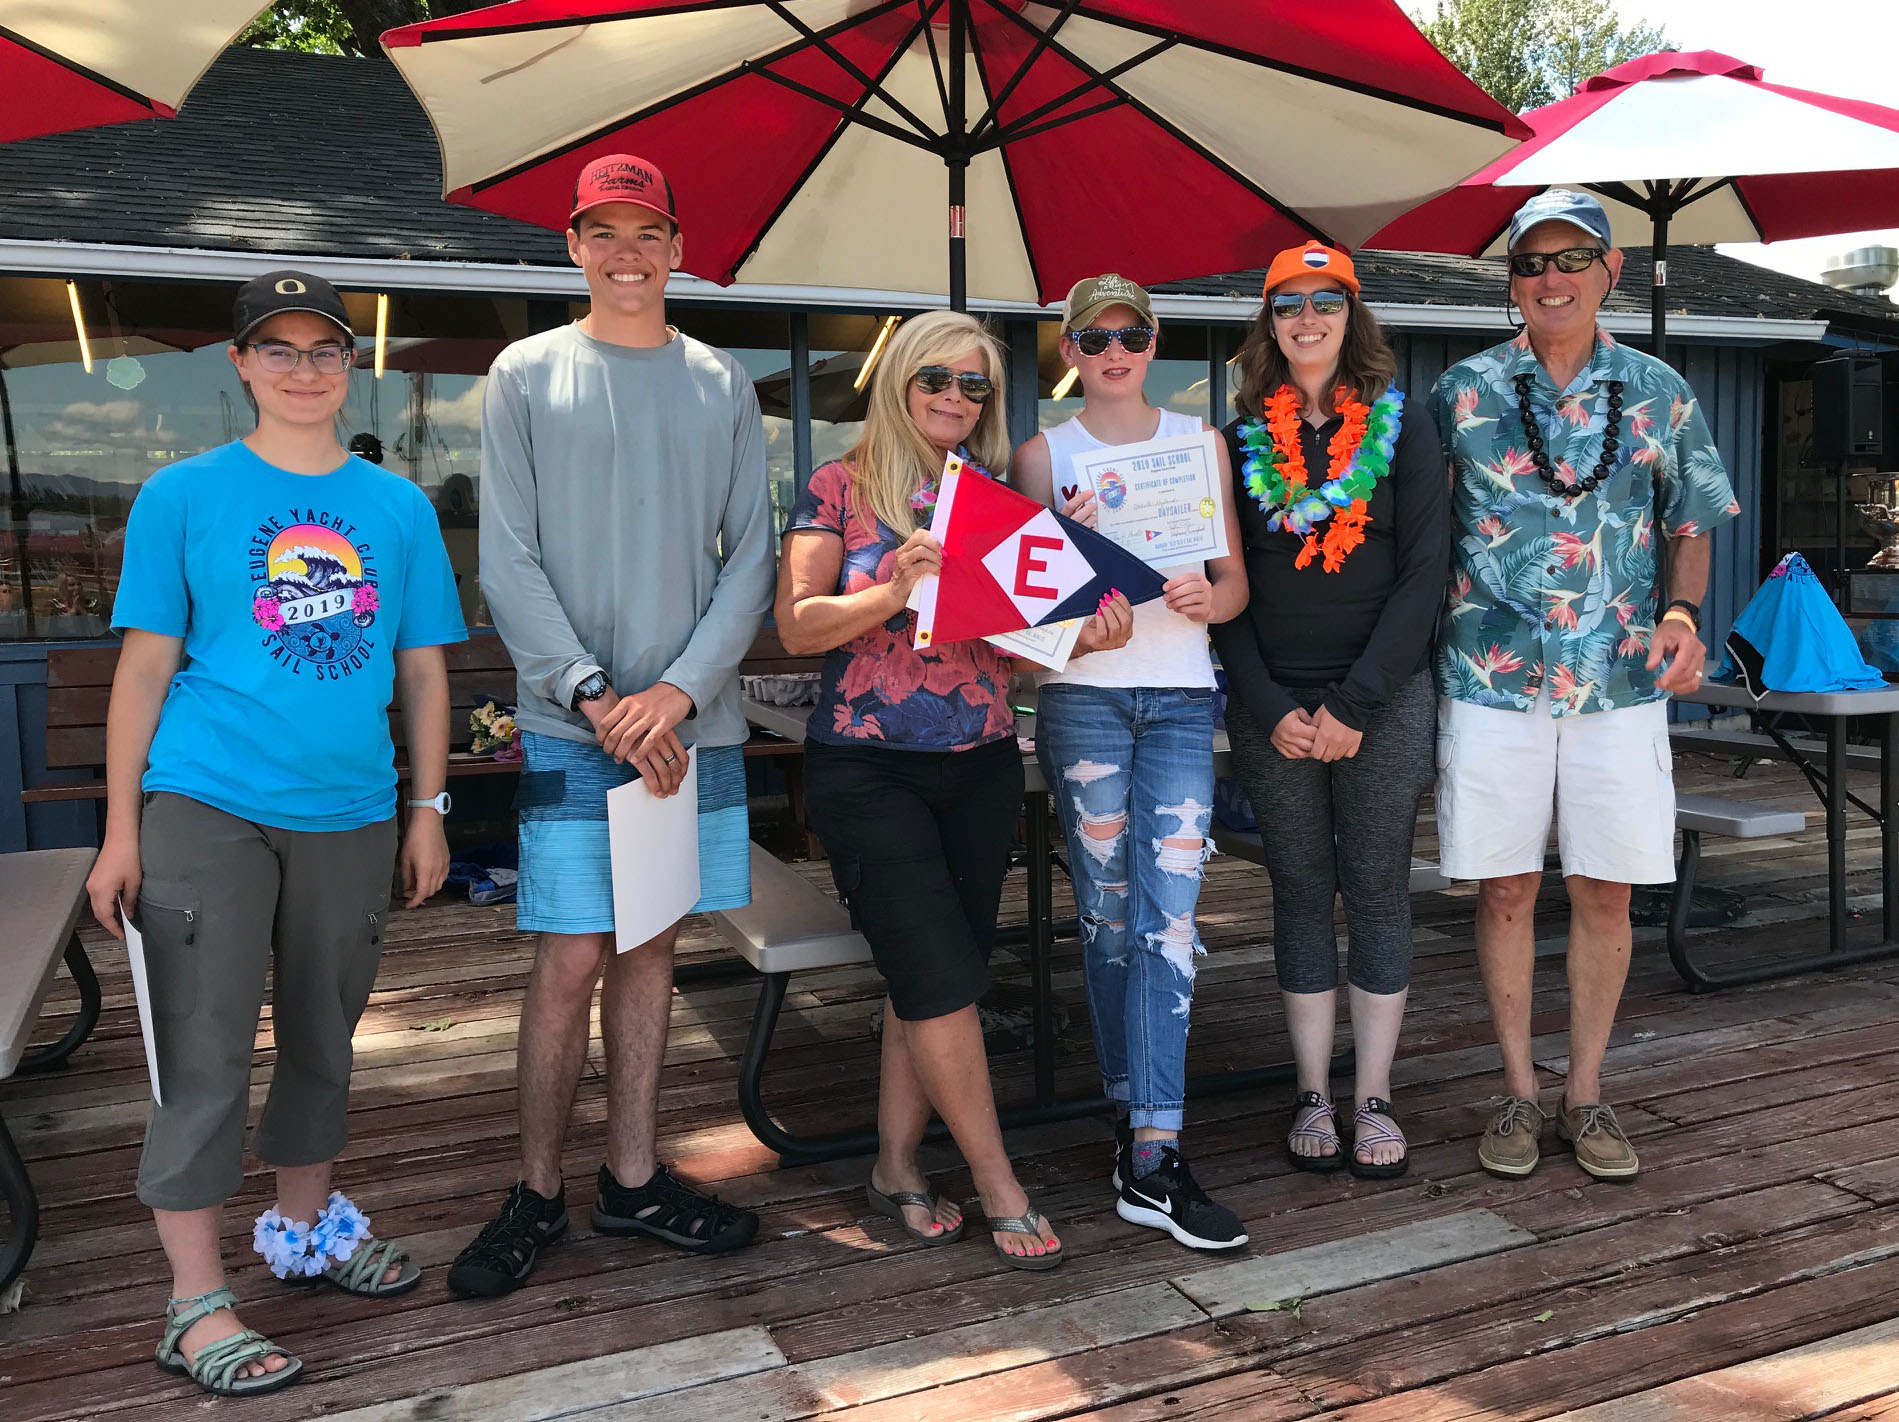 The DaySailer Class of 2019 EYC Sail School